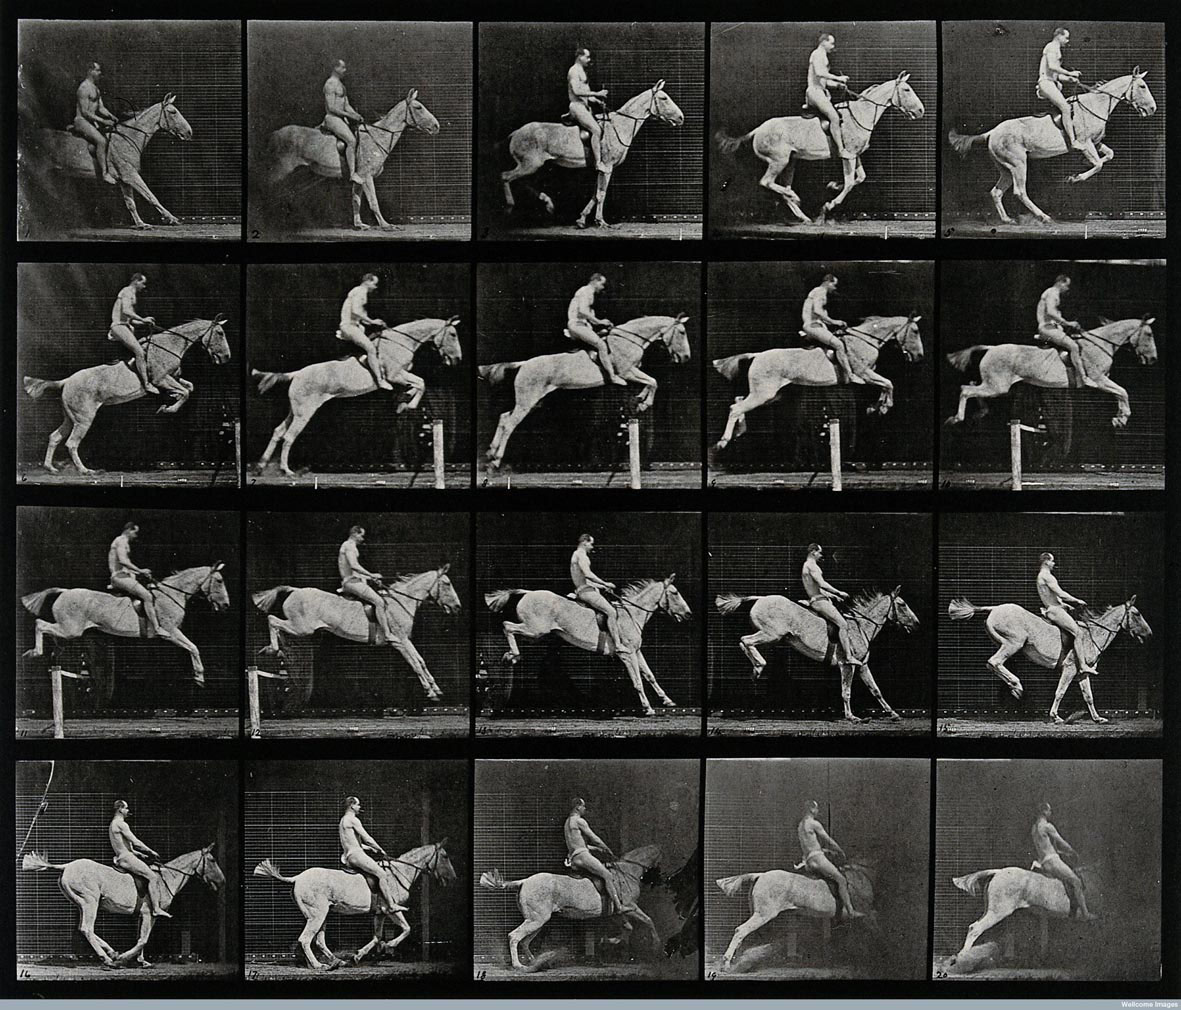 Muybridge A horse jumping a hurdle 1887 255 x 30 cm Wellcome Library di Londra